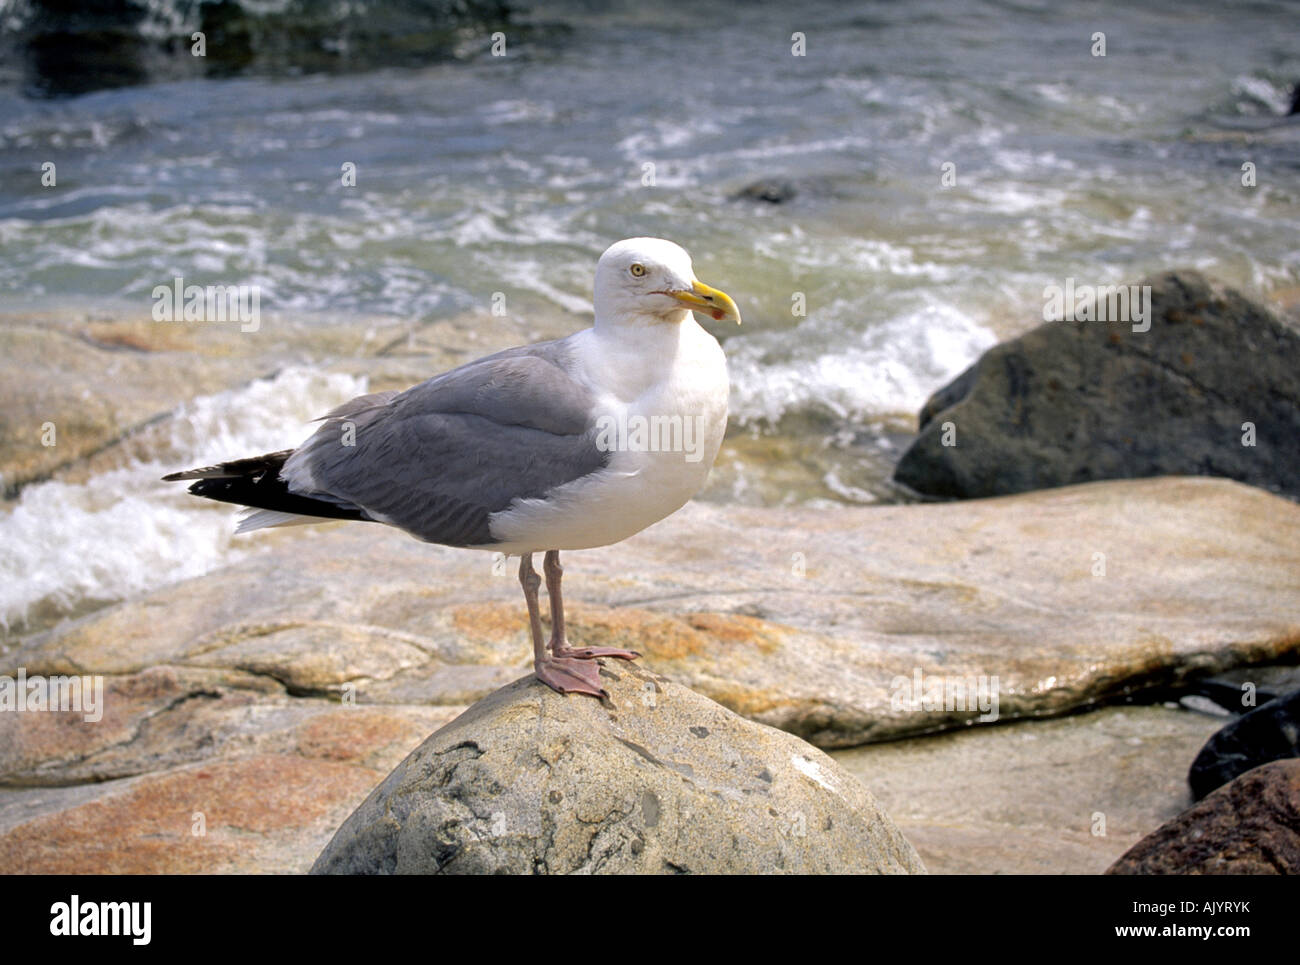 A seagull waits for dinner along the shore of Acadia National Park in Maine - Stock Image